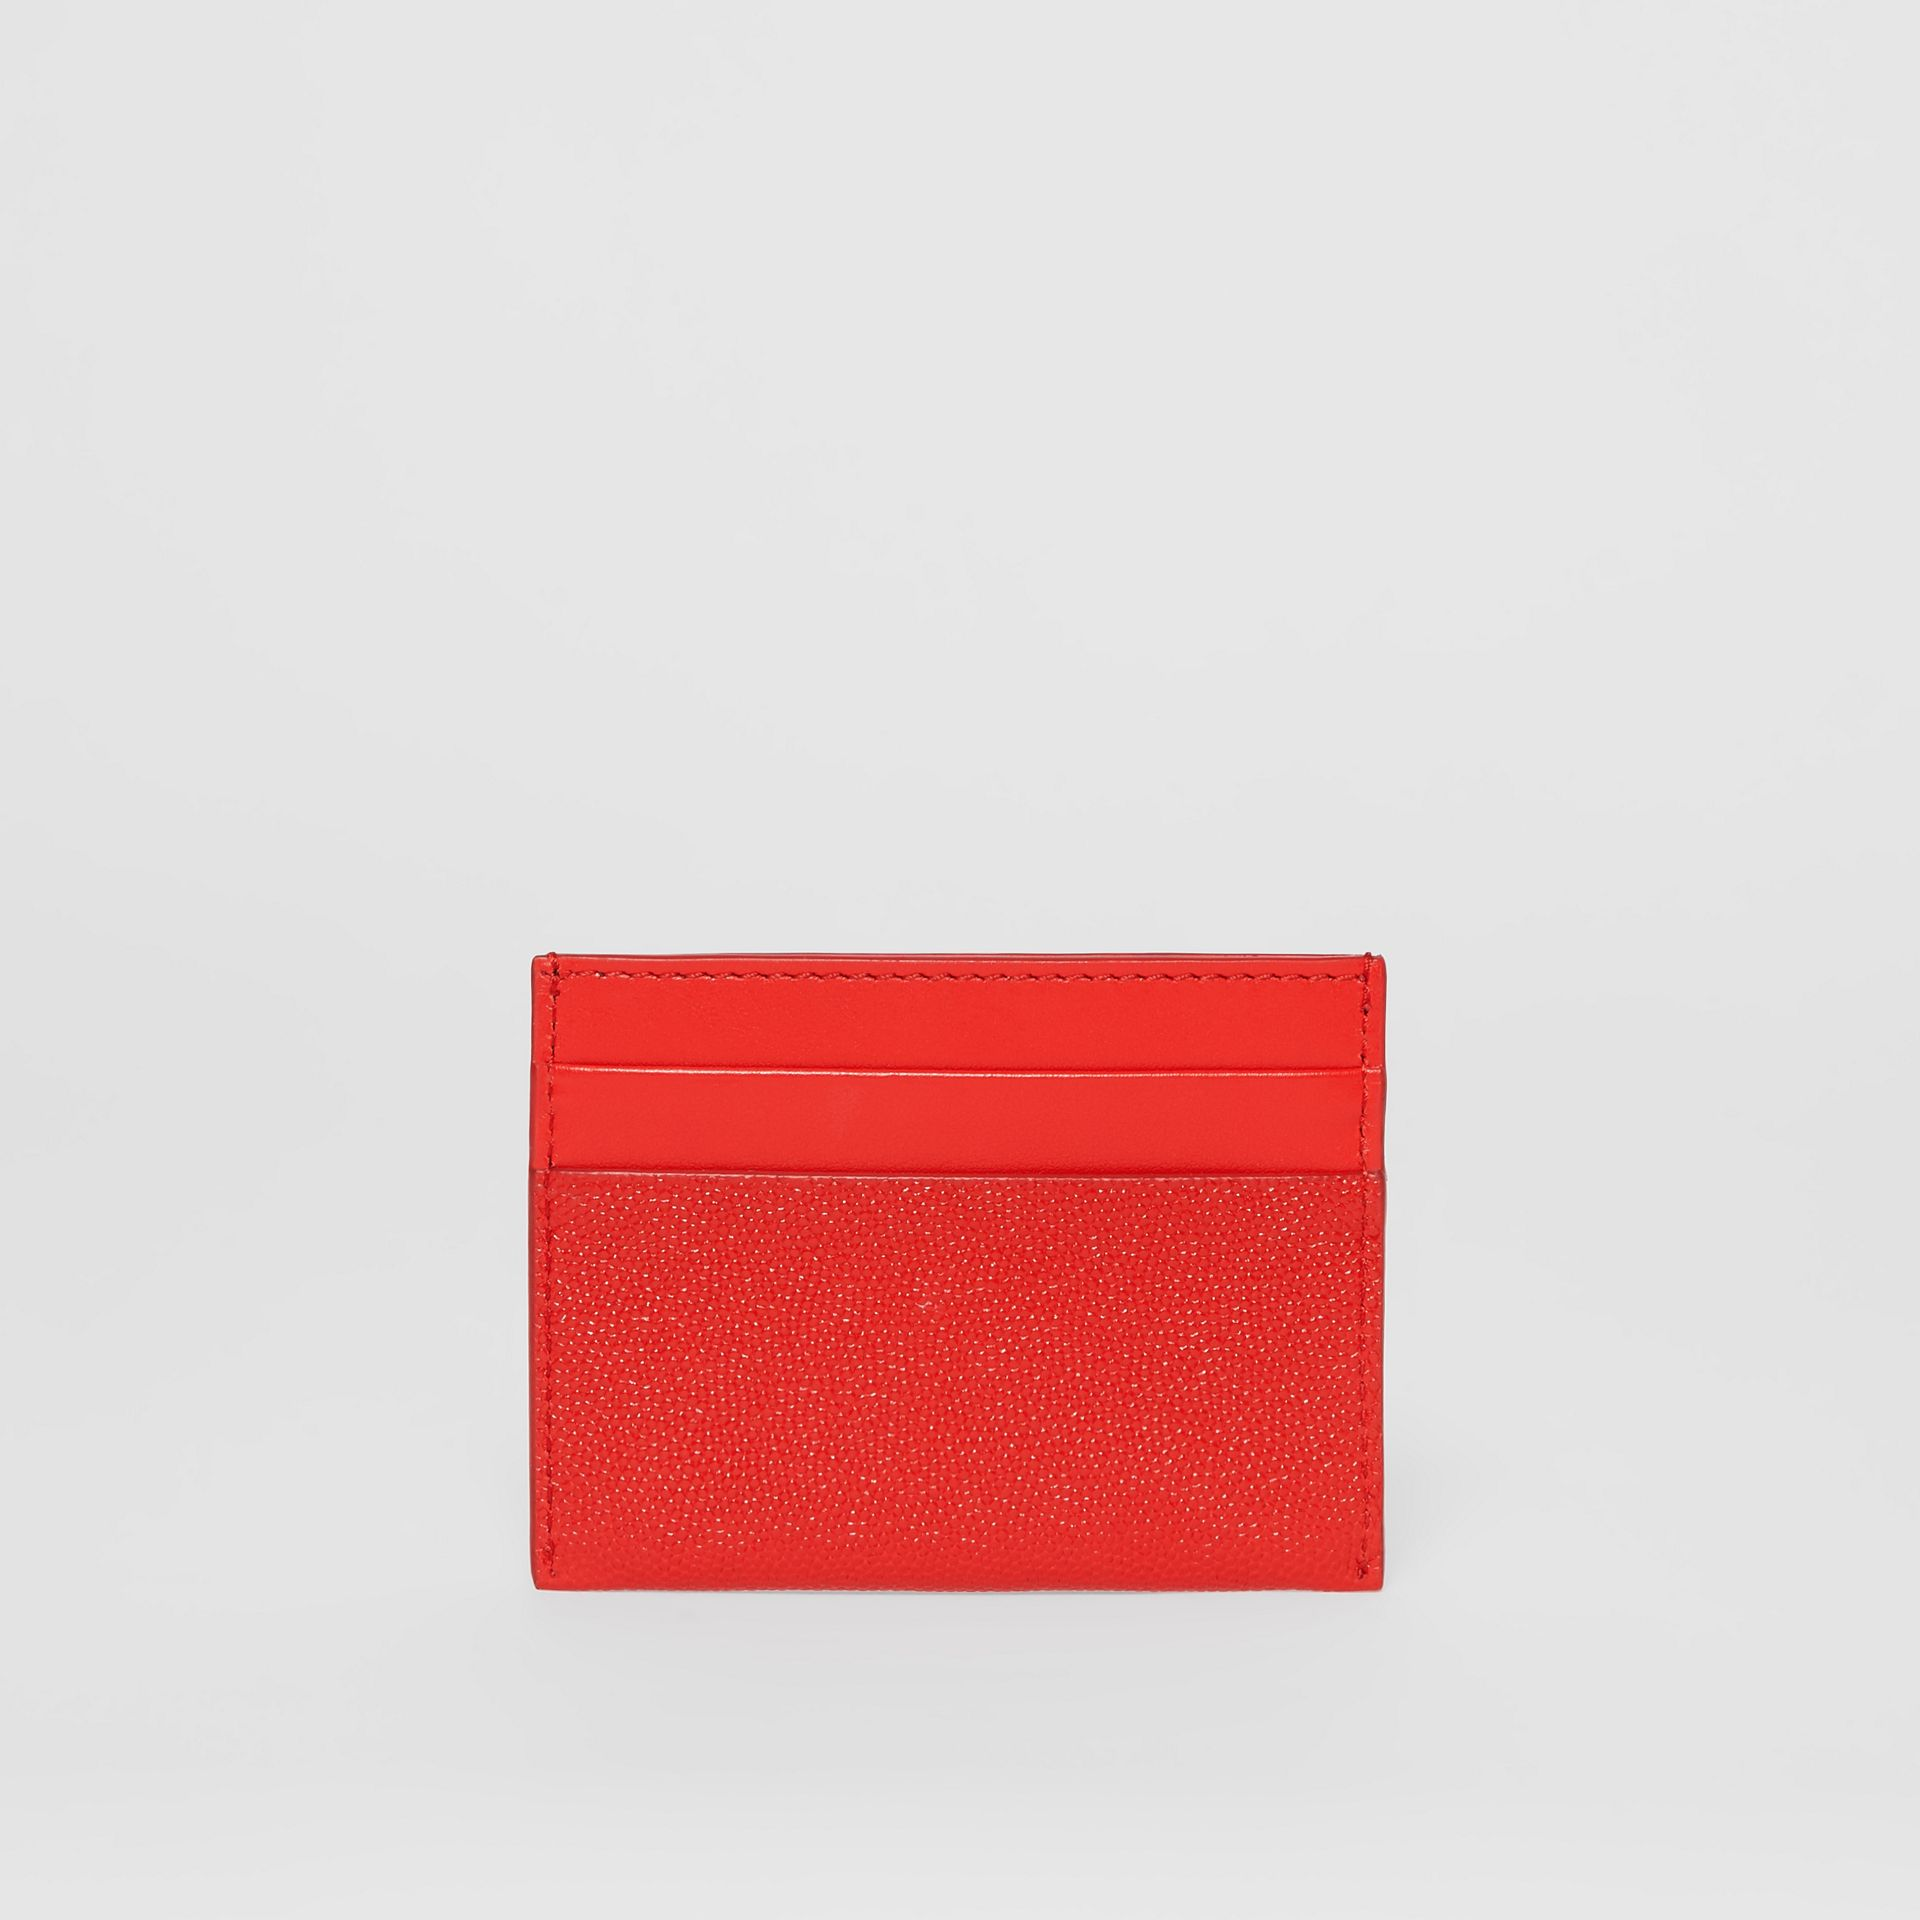 Monogram Motif Leather Card Case in Bright Red - Women | Burberry - gallery image 4